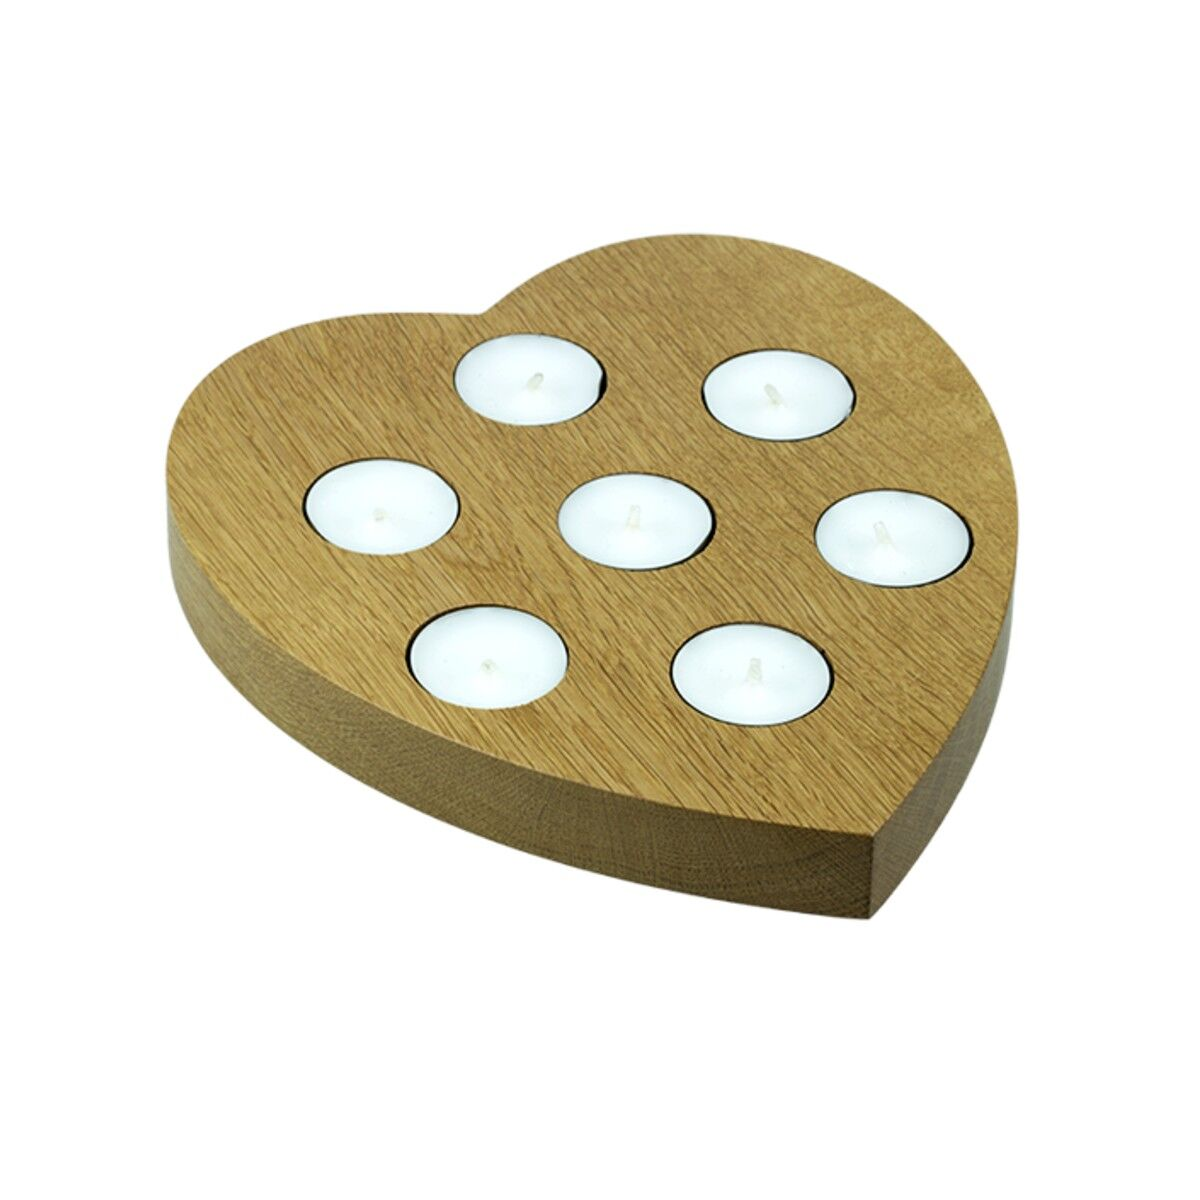 Large oak heart tea light holder